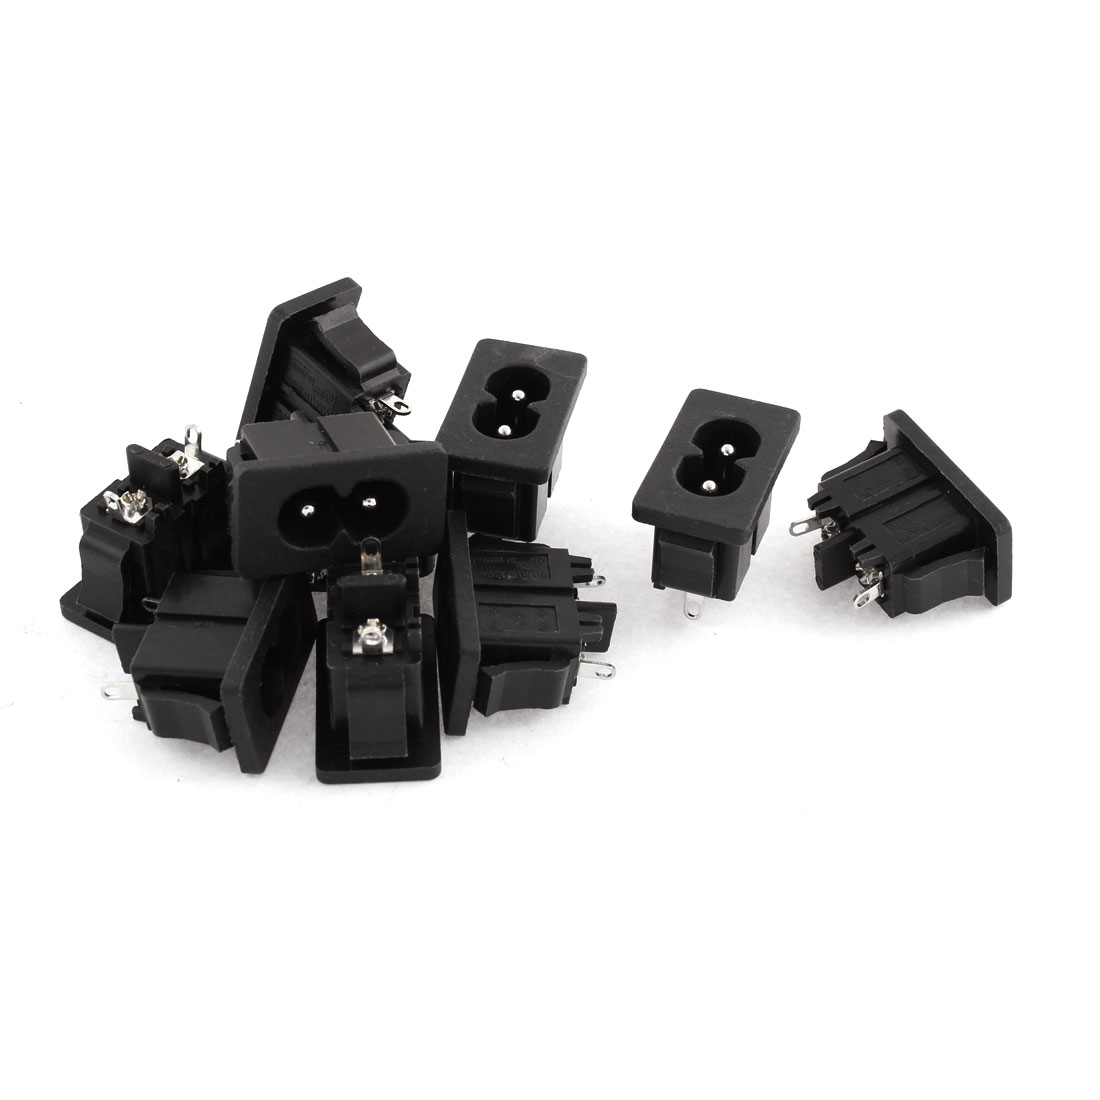 AC 250V 5A 2P Inlet IEC 320 C8 Male Power Socket Connector 10 Pcs